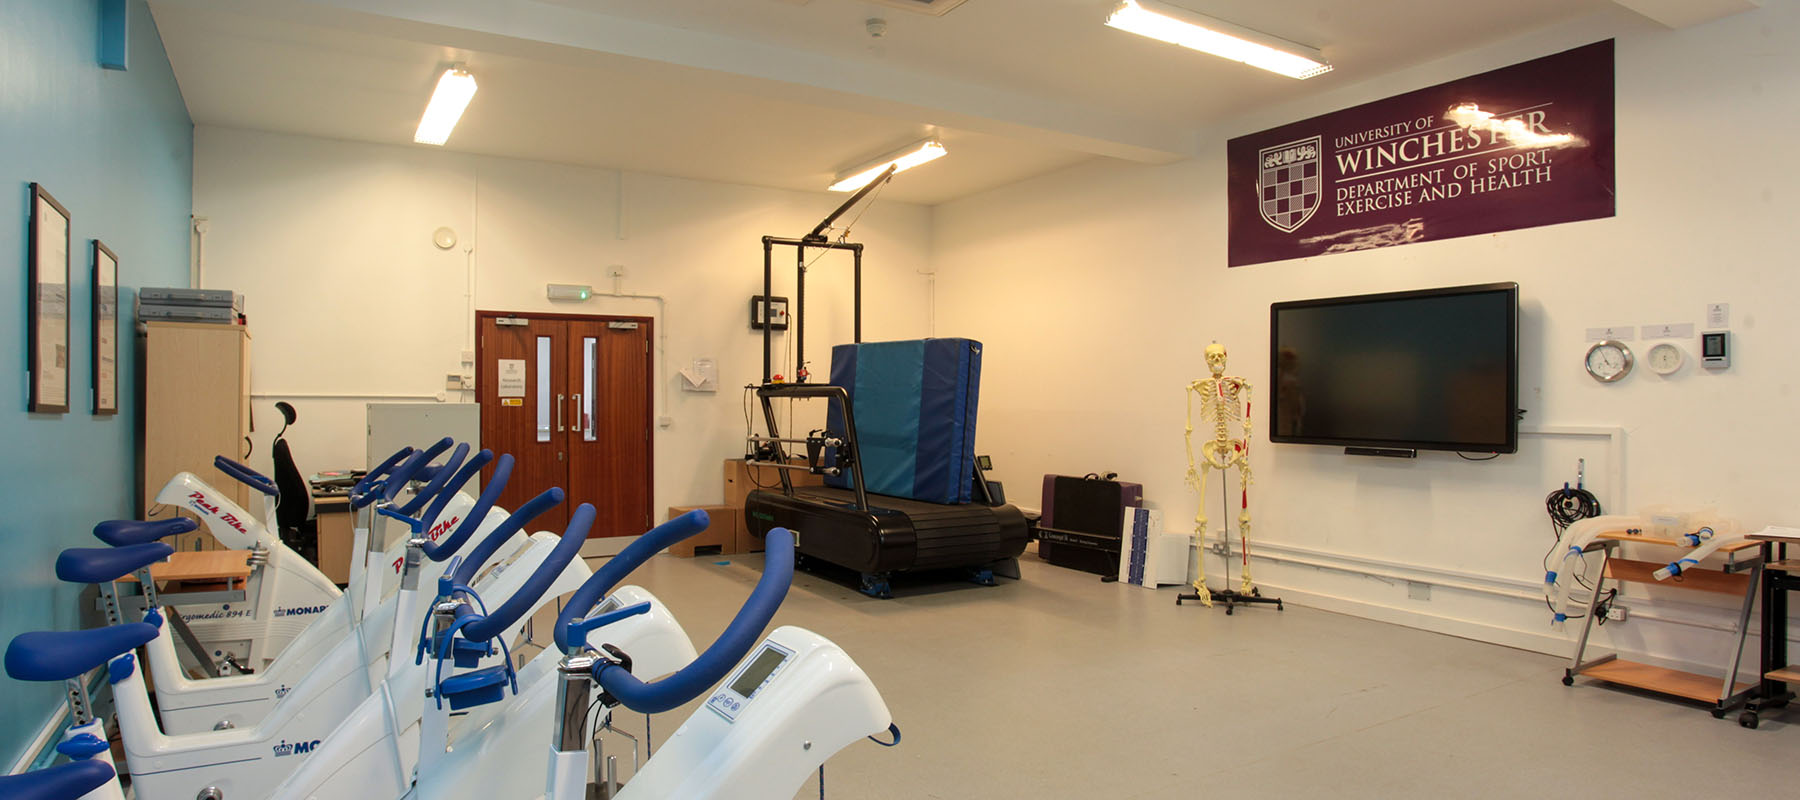 Research and Teaching facilities at the University of Winchester: one of our state-of-the-art Sport Science laboratories